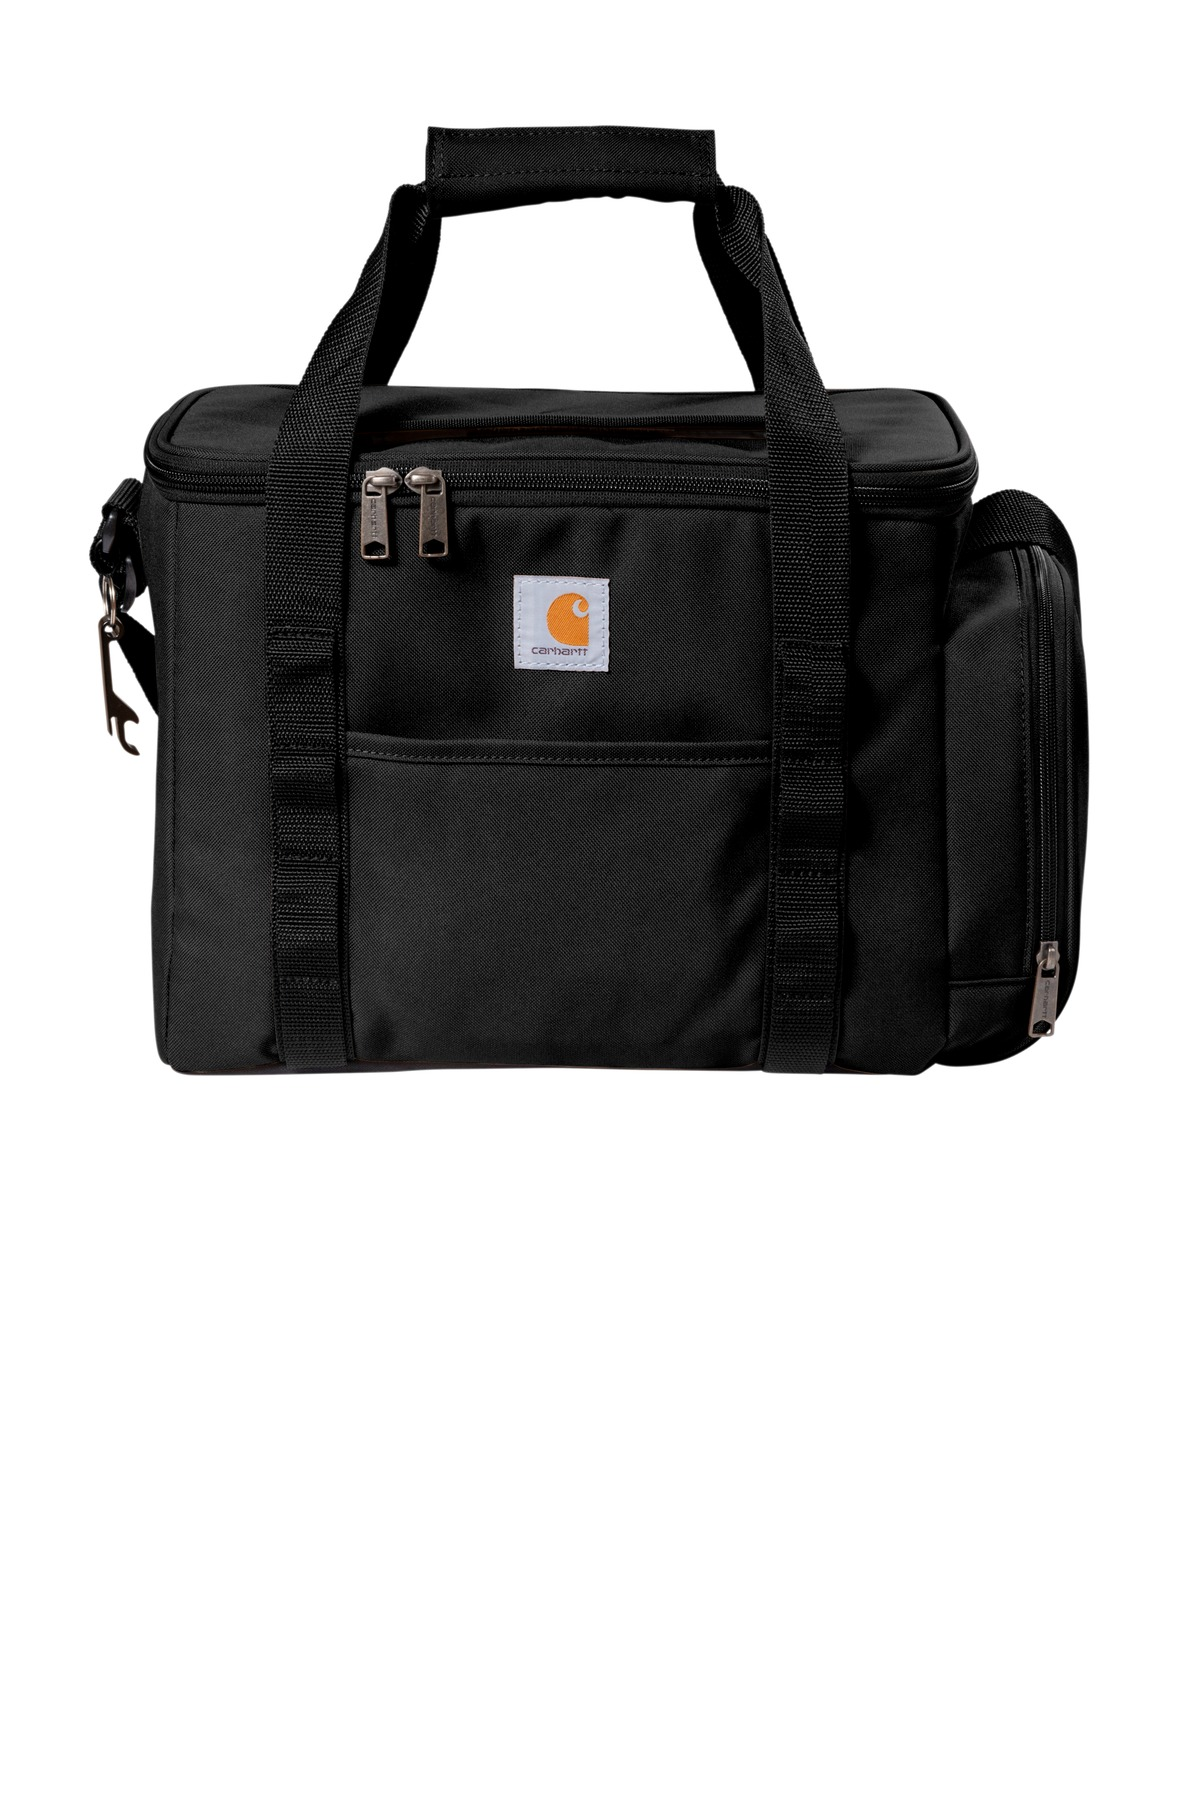 Carhartt ®  Duffel 36-Can Cooler. CT89520701 - Black